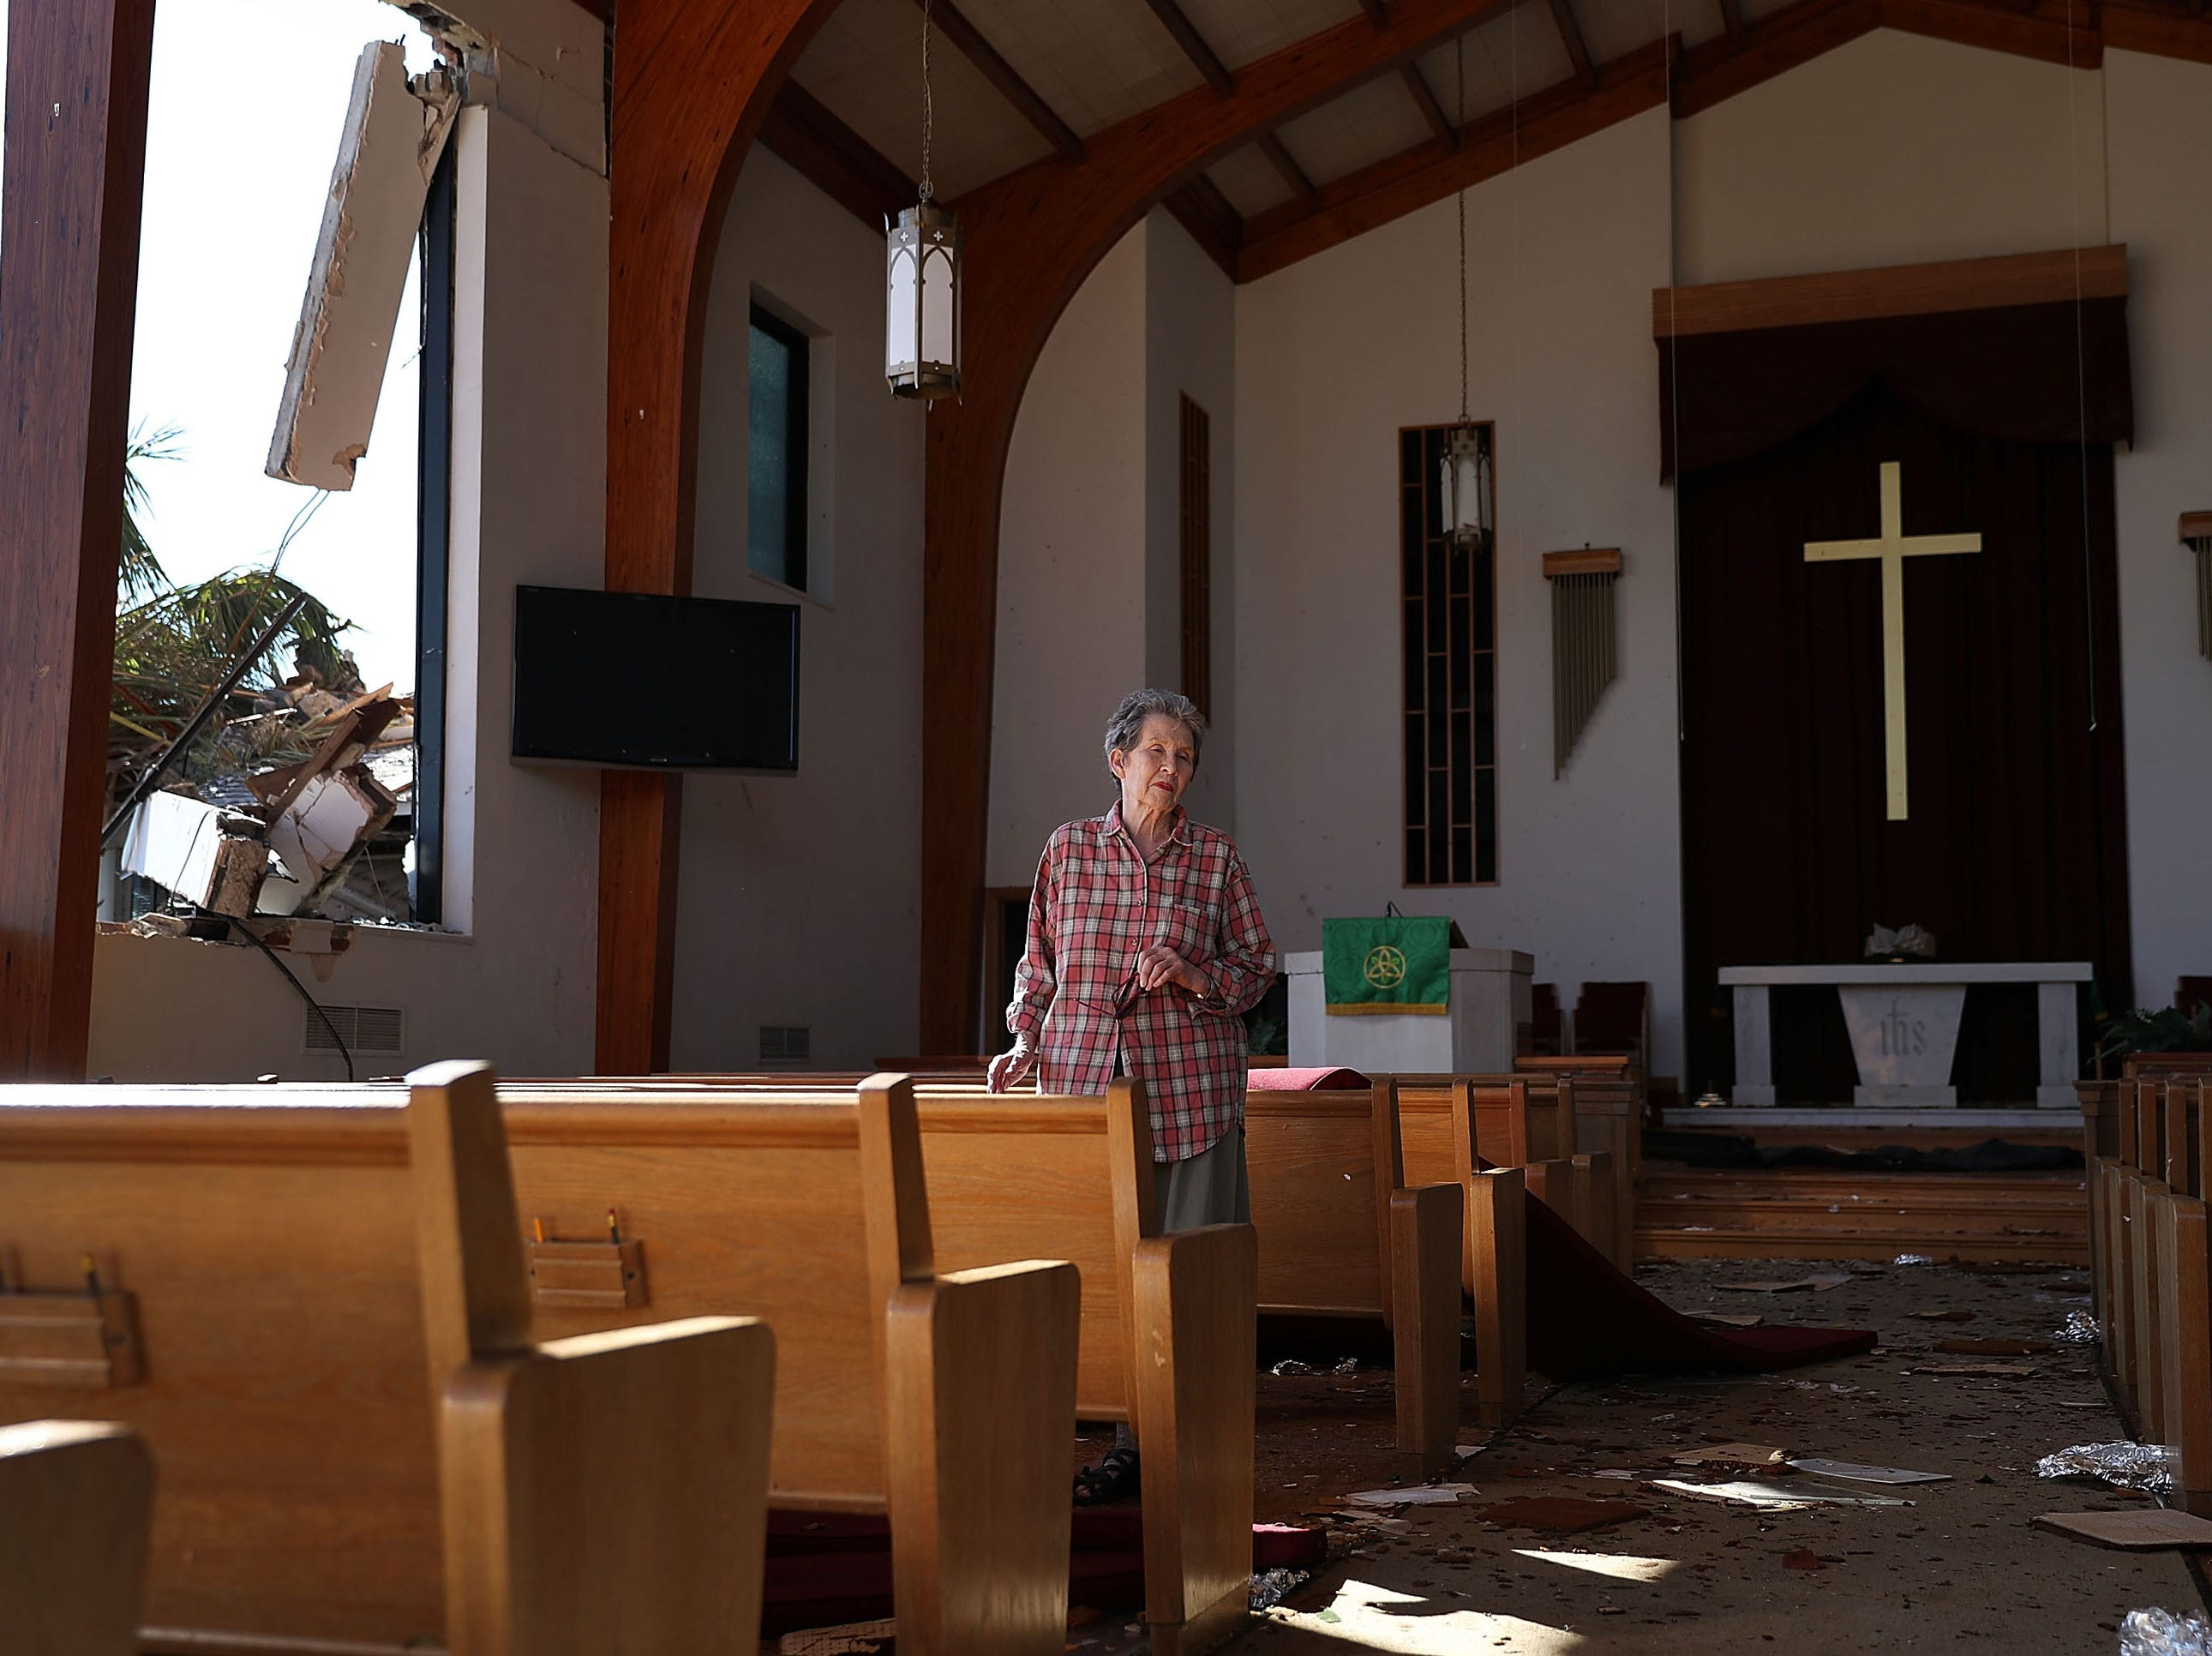 Cynthia Biegler, 81, stands in the church that she has attended since 1962, after two of the exterior walls were blown down when Hurricane Michael passed through the area, Oct. 13, 2018 in Panama City, Fl. The hurricane hit the Florida Panhandle as a category 4 storm causing massive damage and claimed the lives of 17 people.